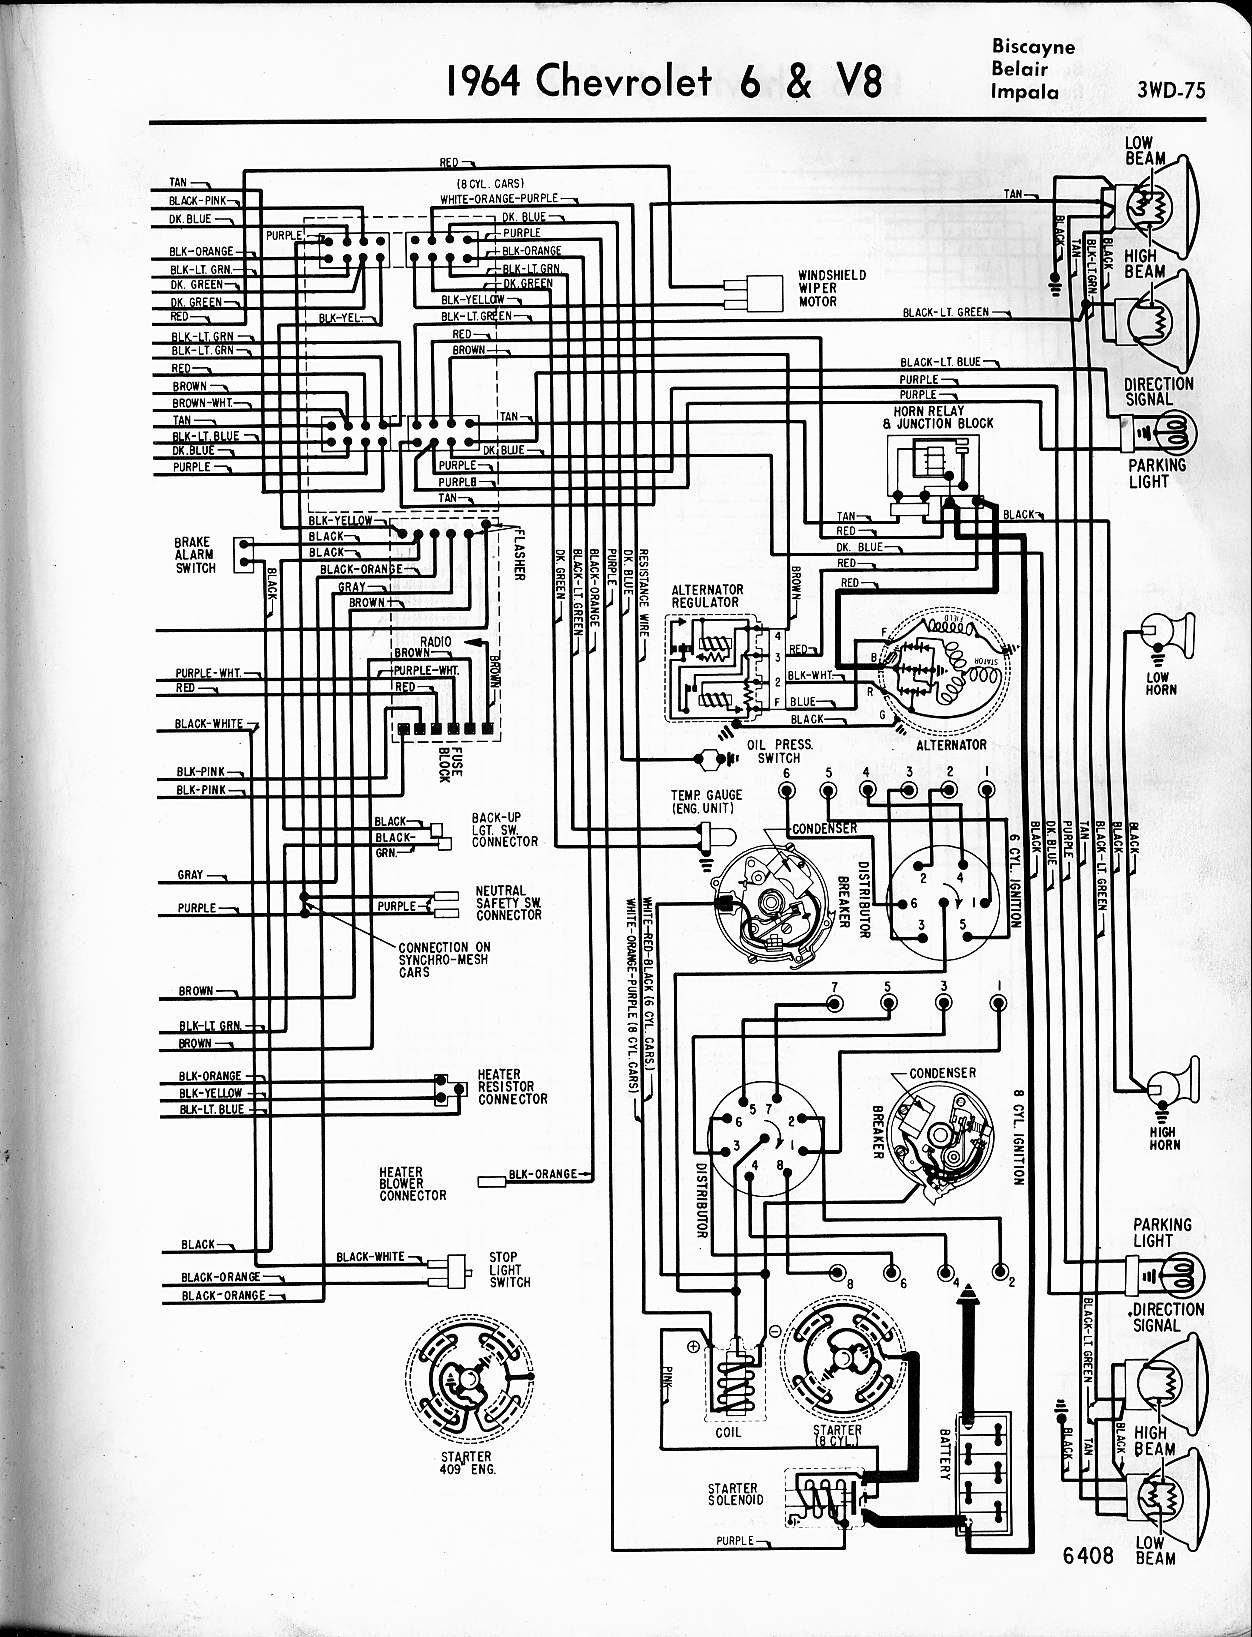 hight resolution of 2006 chevy impala wiring diagram wiring diagrams 2006 chevy impala headlight wiring diagram 2006 chevy impala wiring